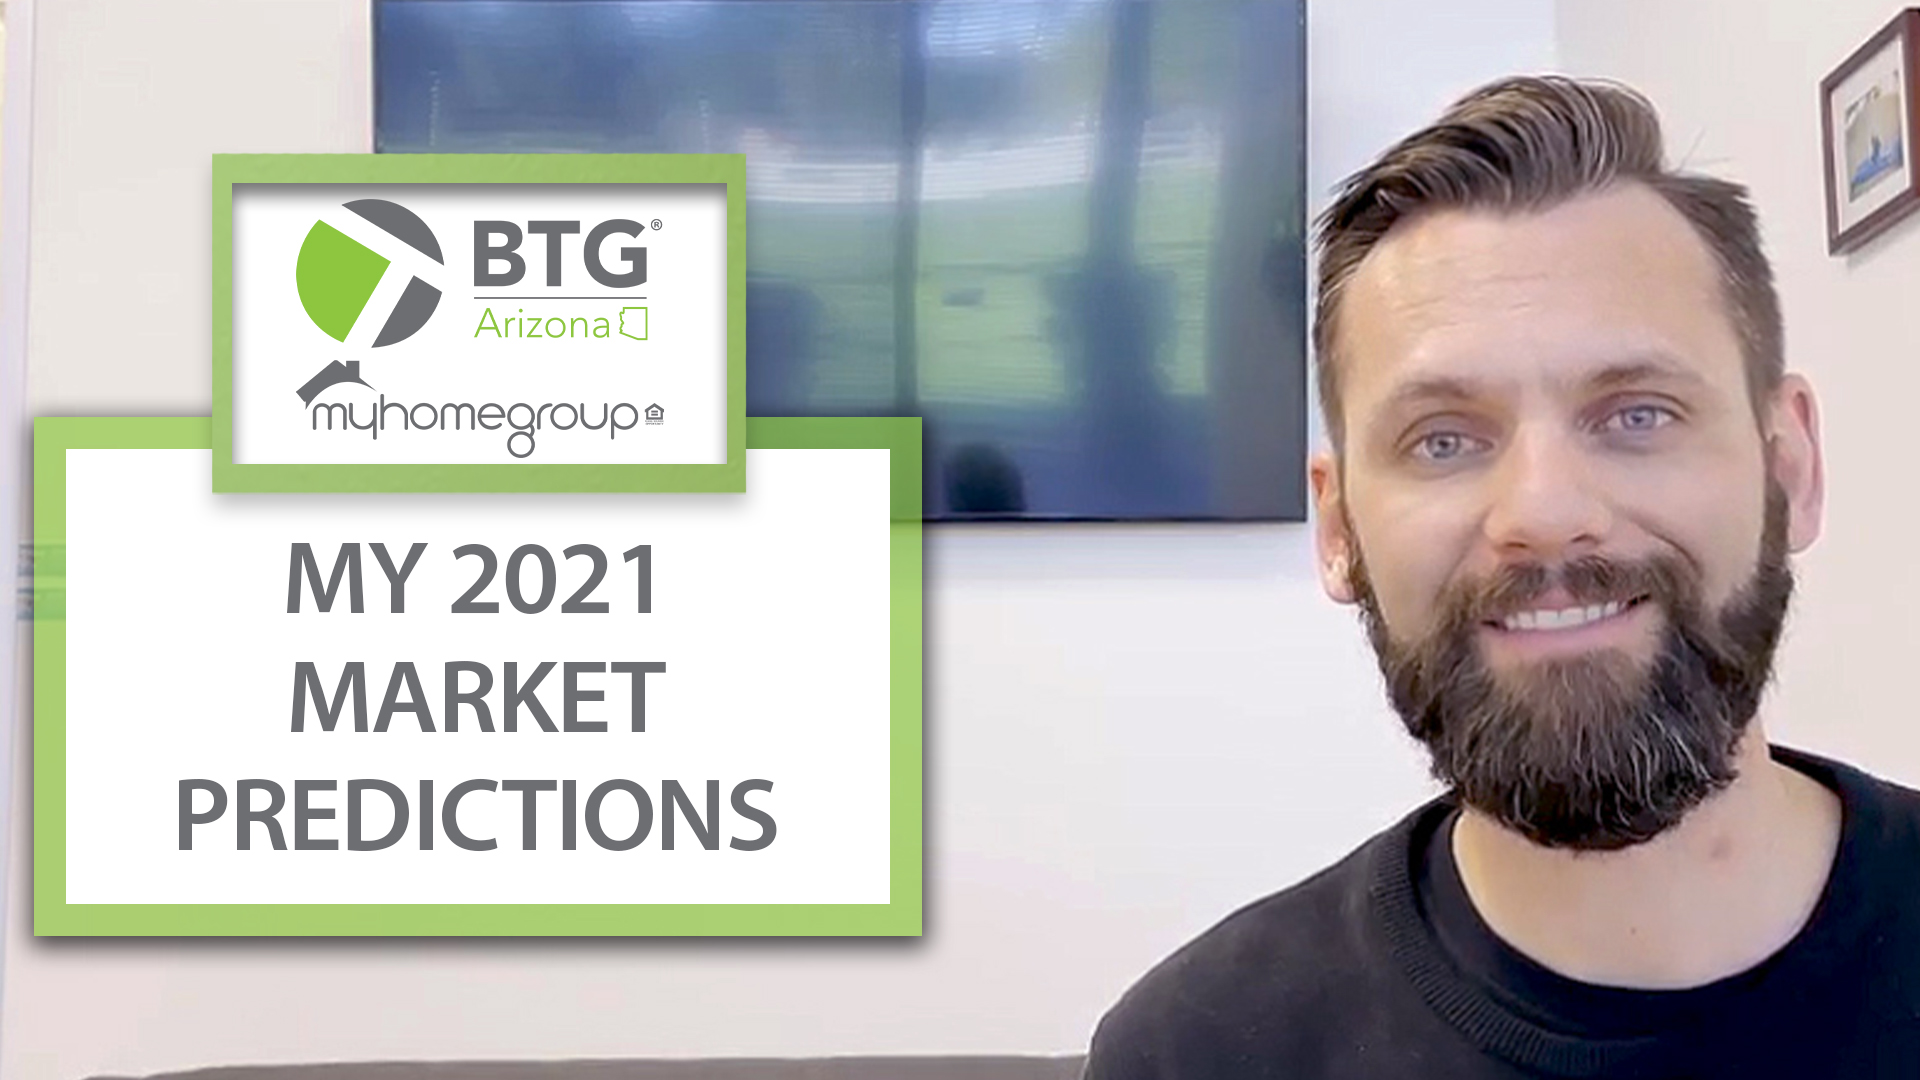 What Can the Market Expect in 2021?